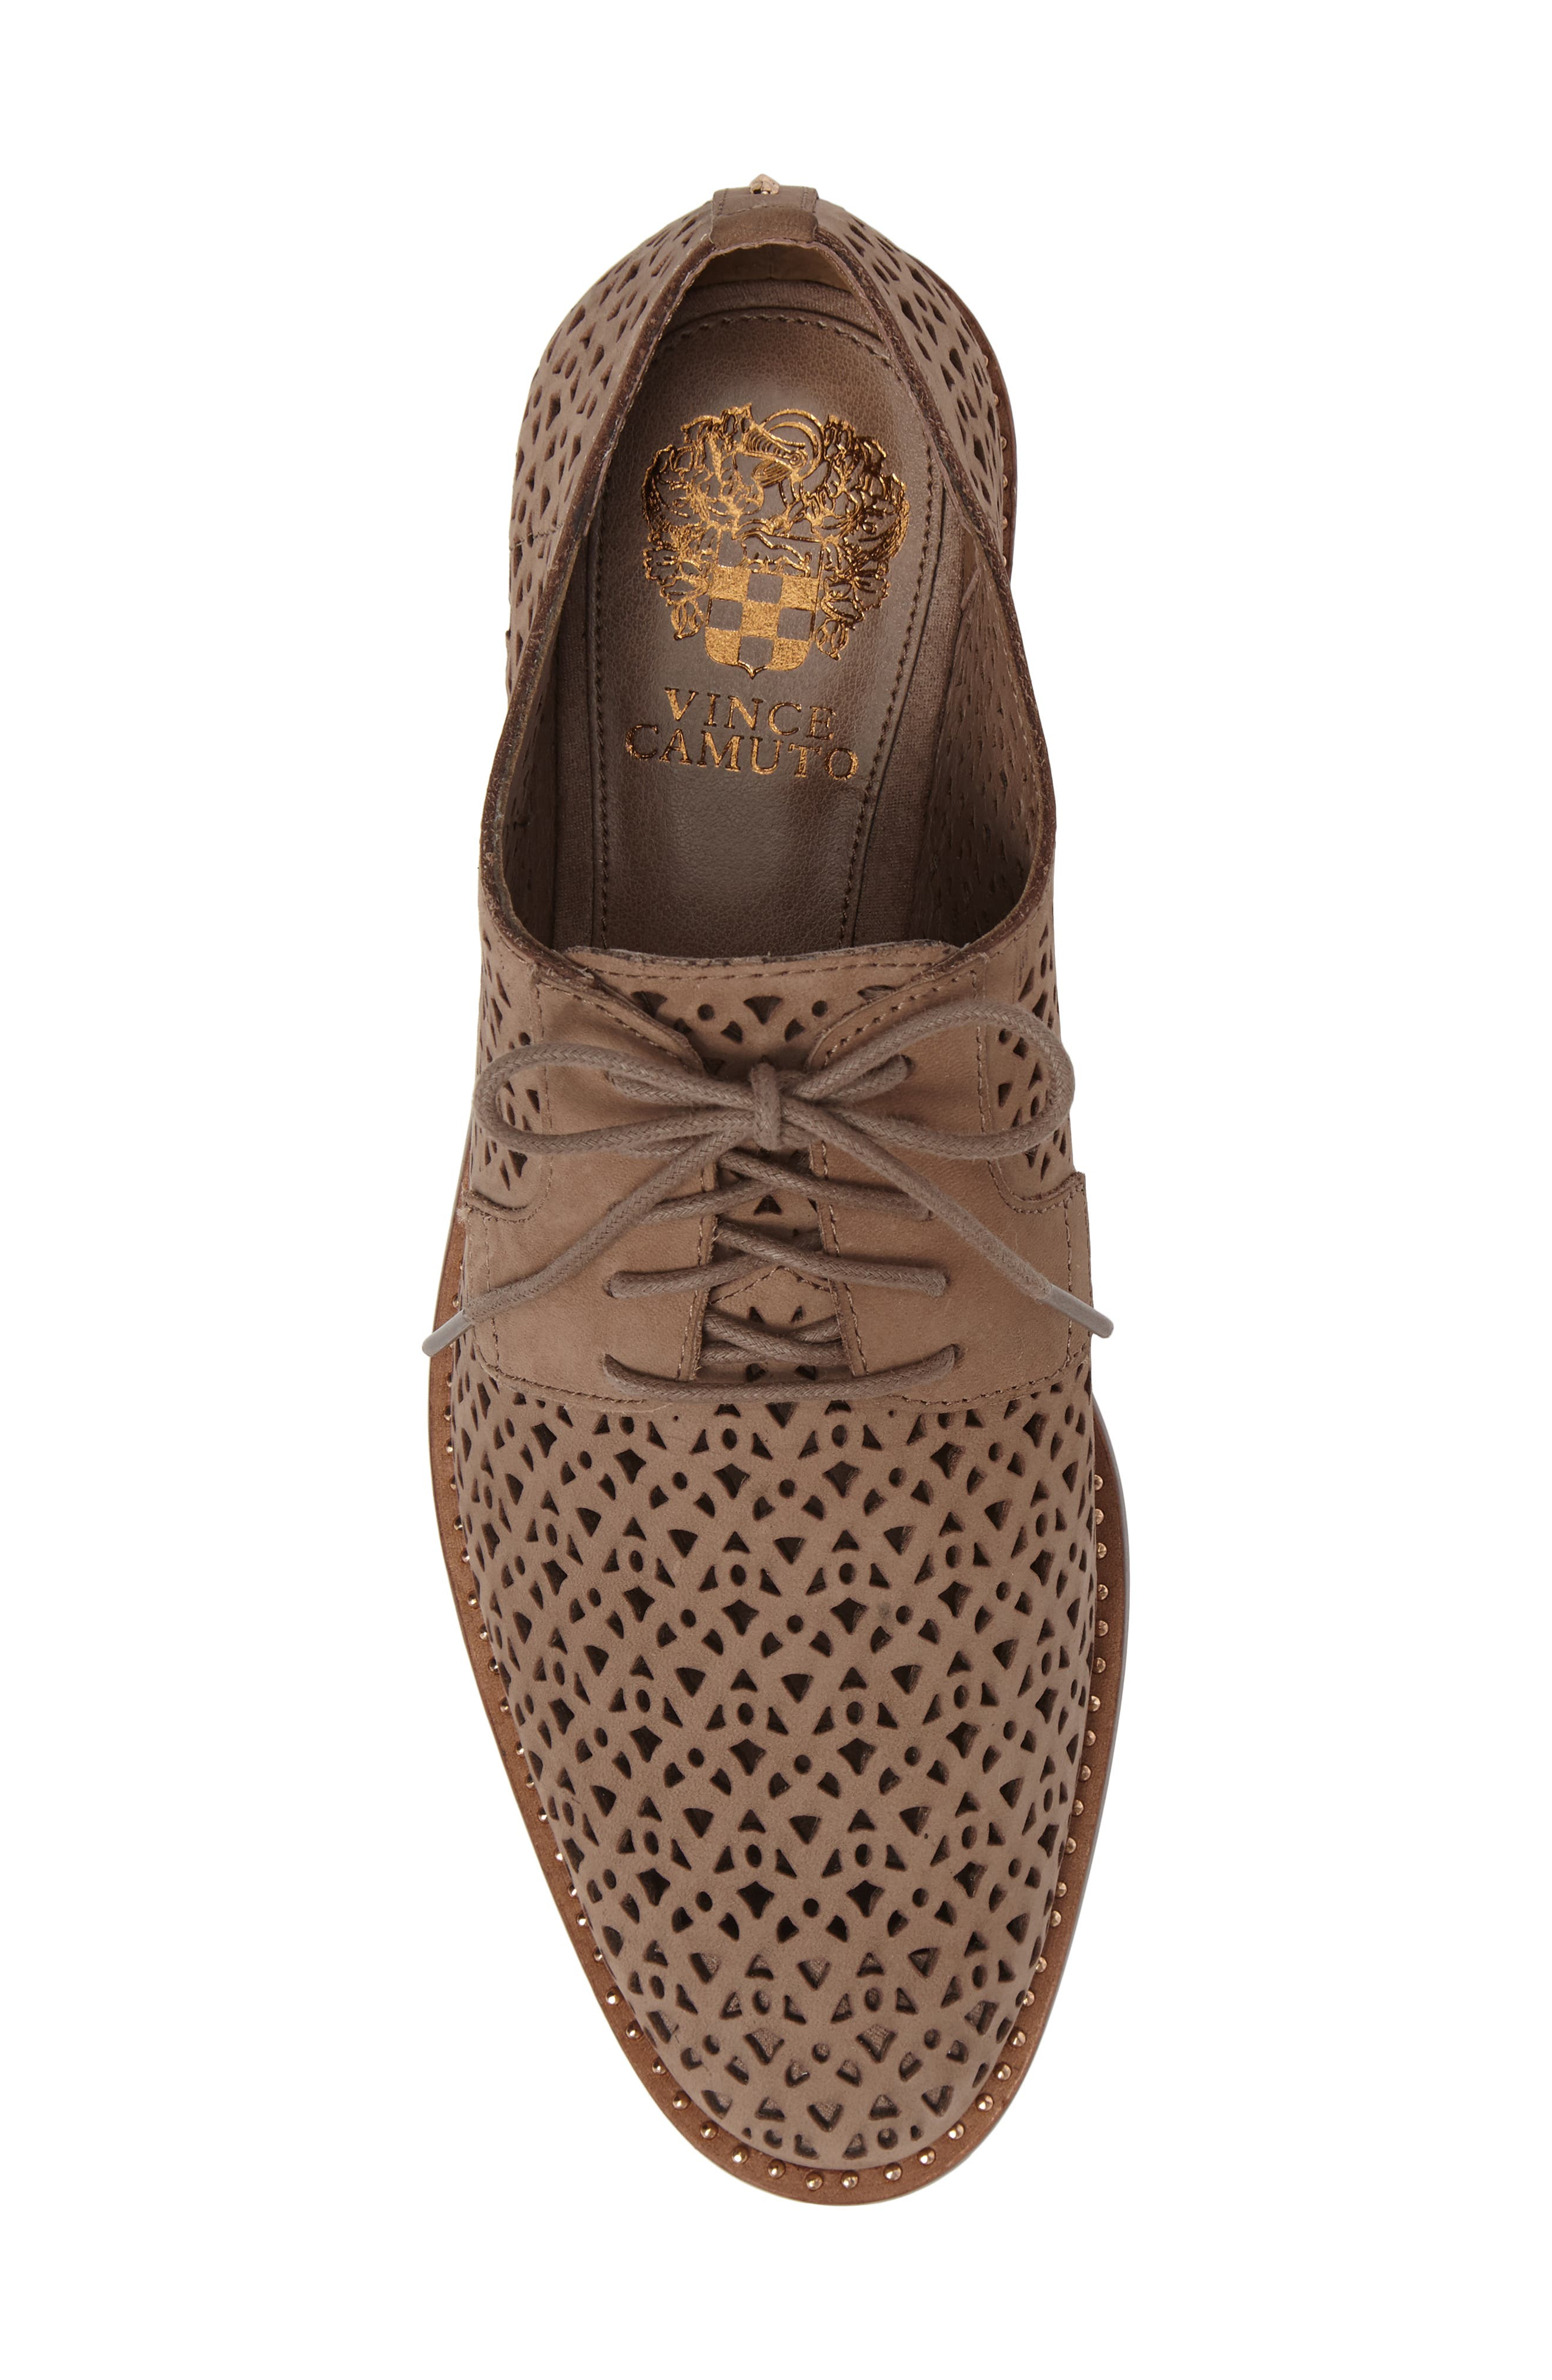 Lesta Geo Perforated Oxford,                             Alternate thumbnail 5, color,                             French Taupe Suede